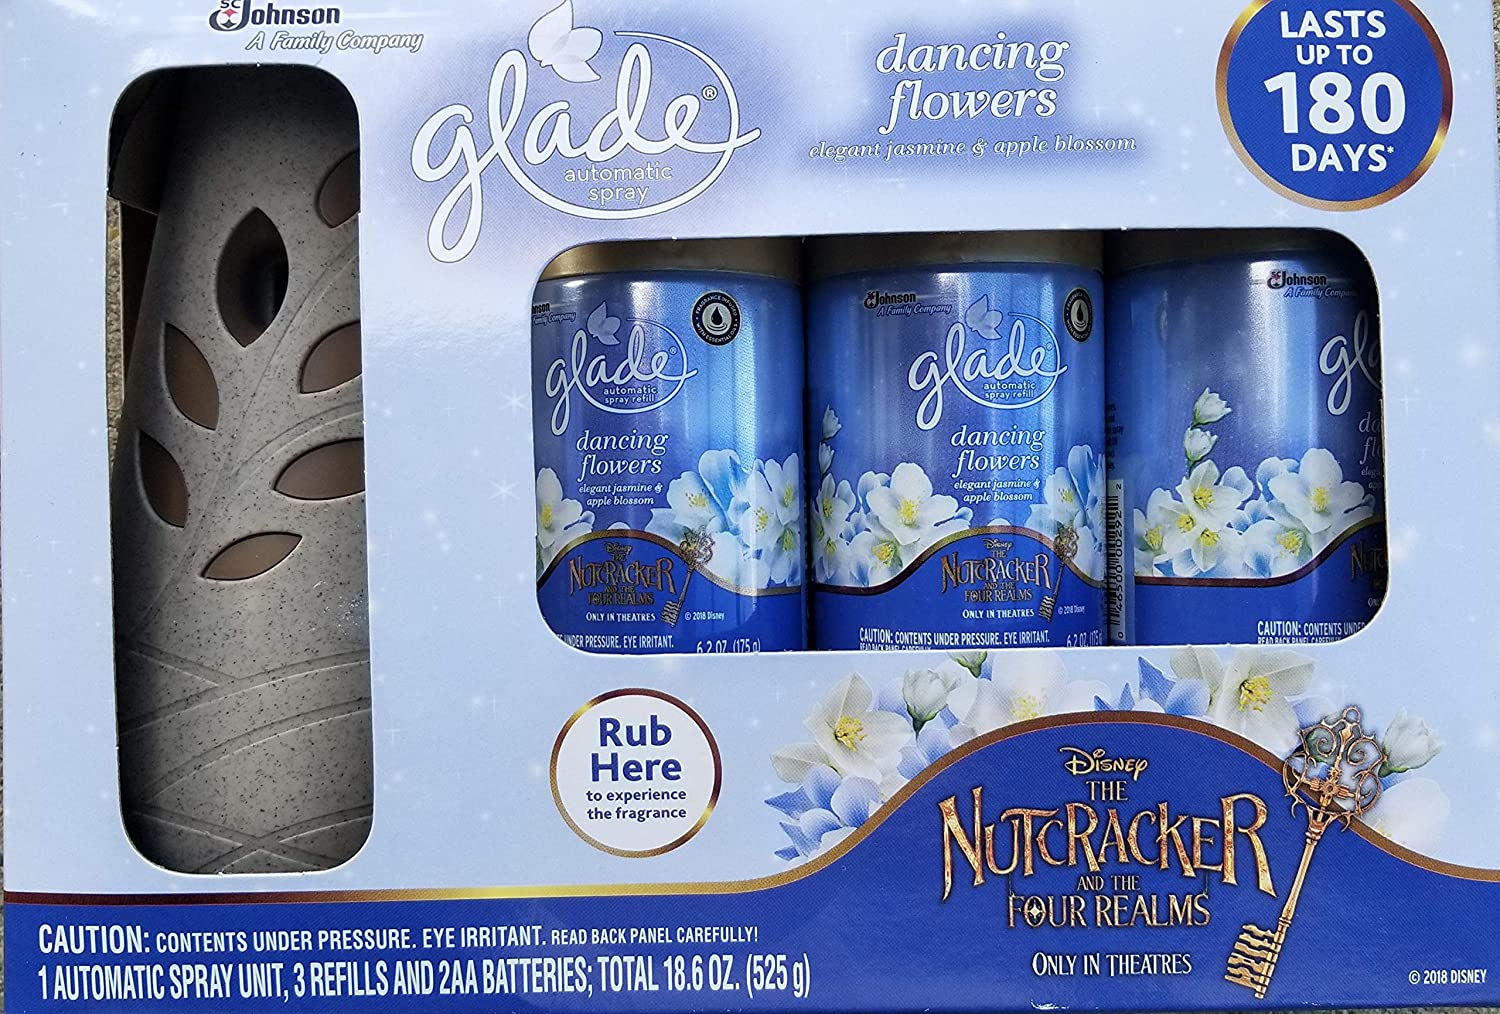 Glade Automatic Spray Starter Set, Dancing Flowers, 3 Refills + 1 Sprayer